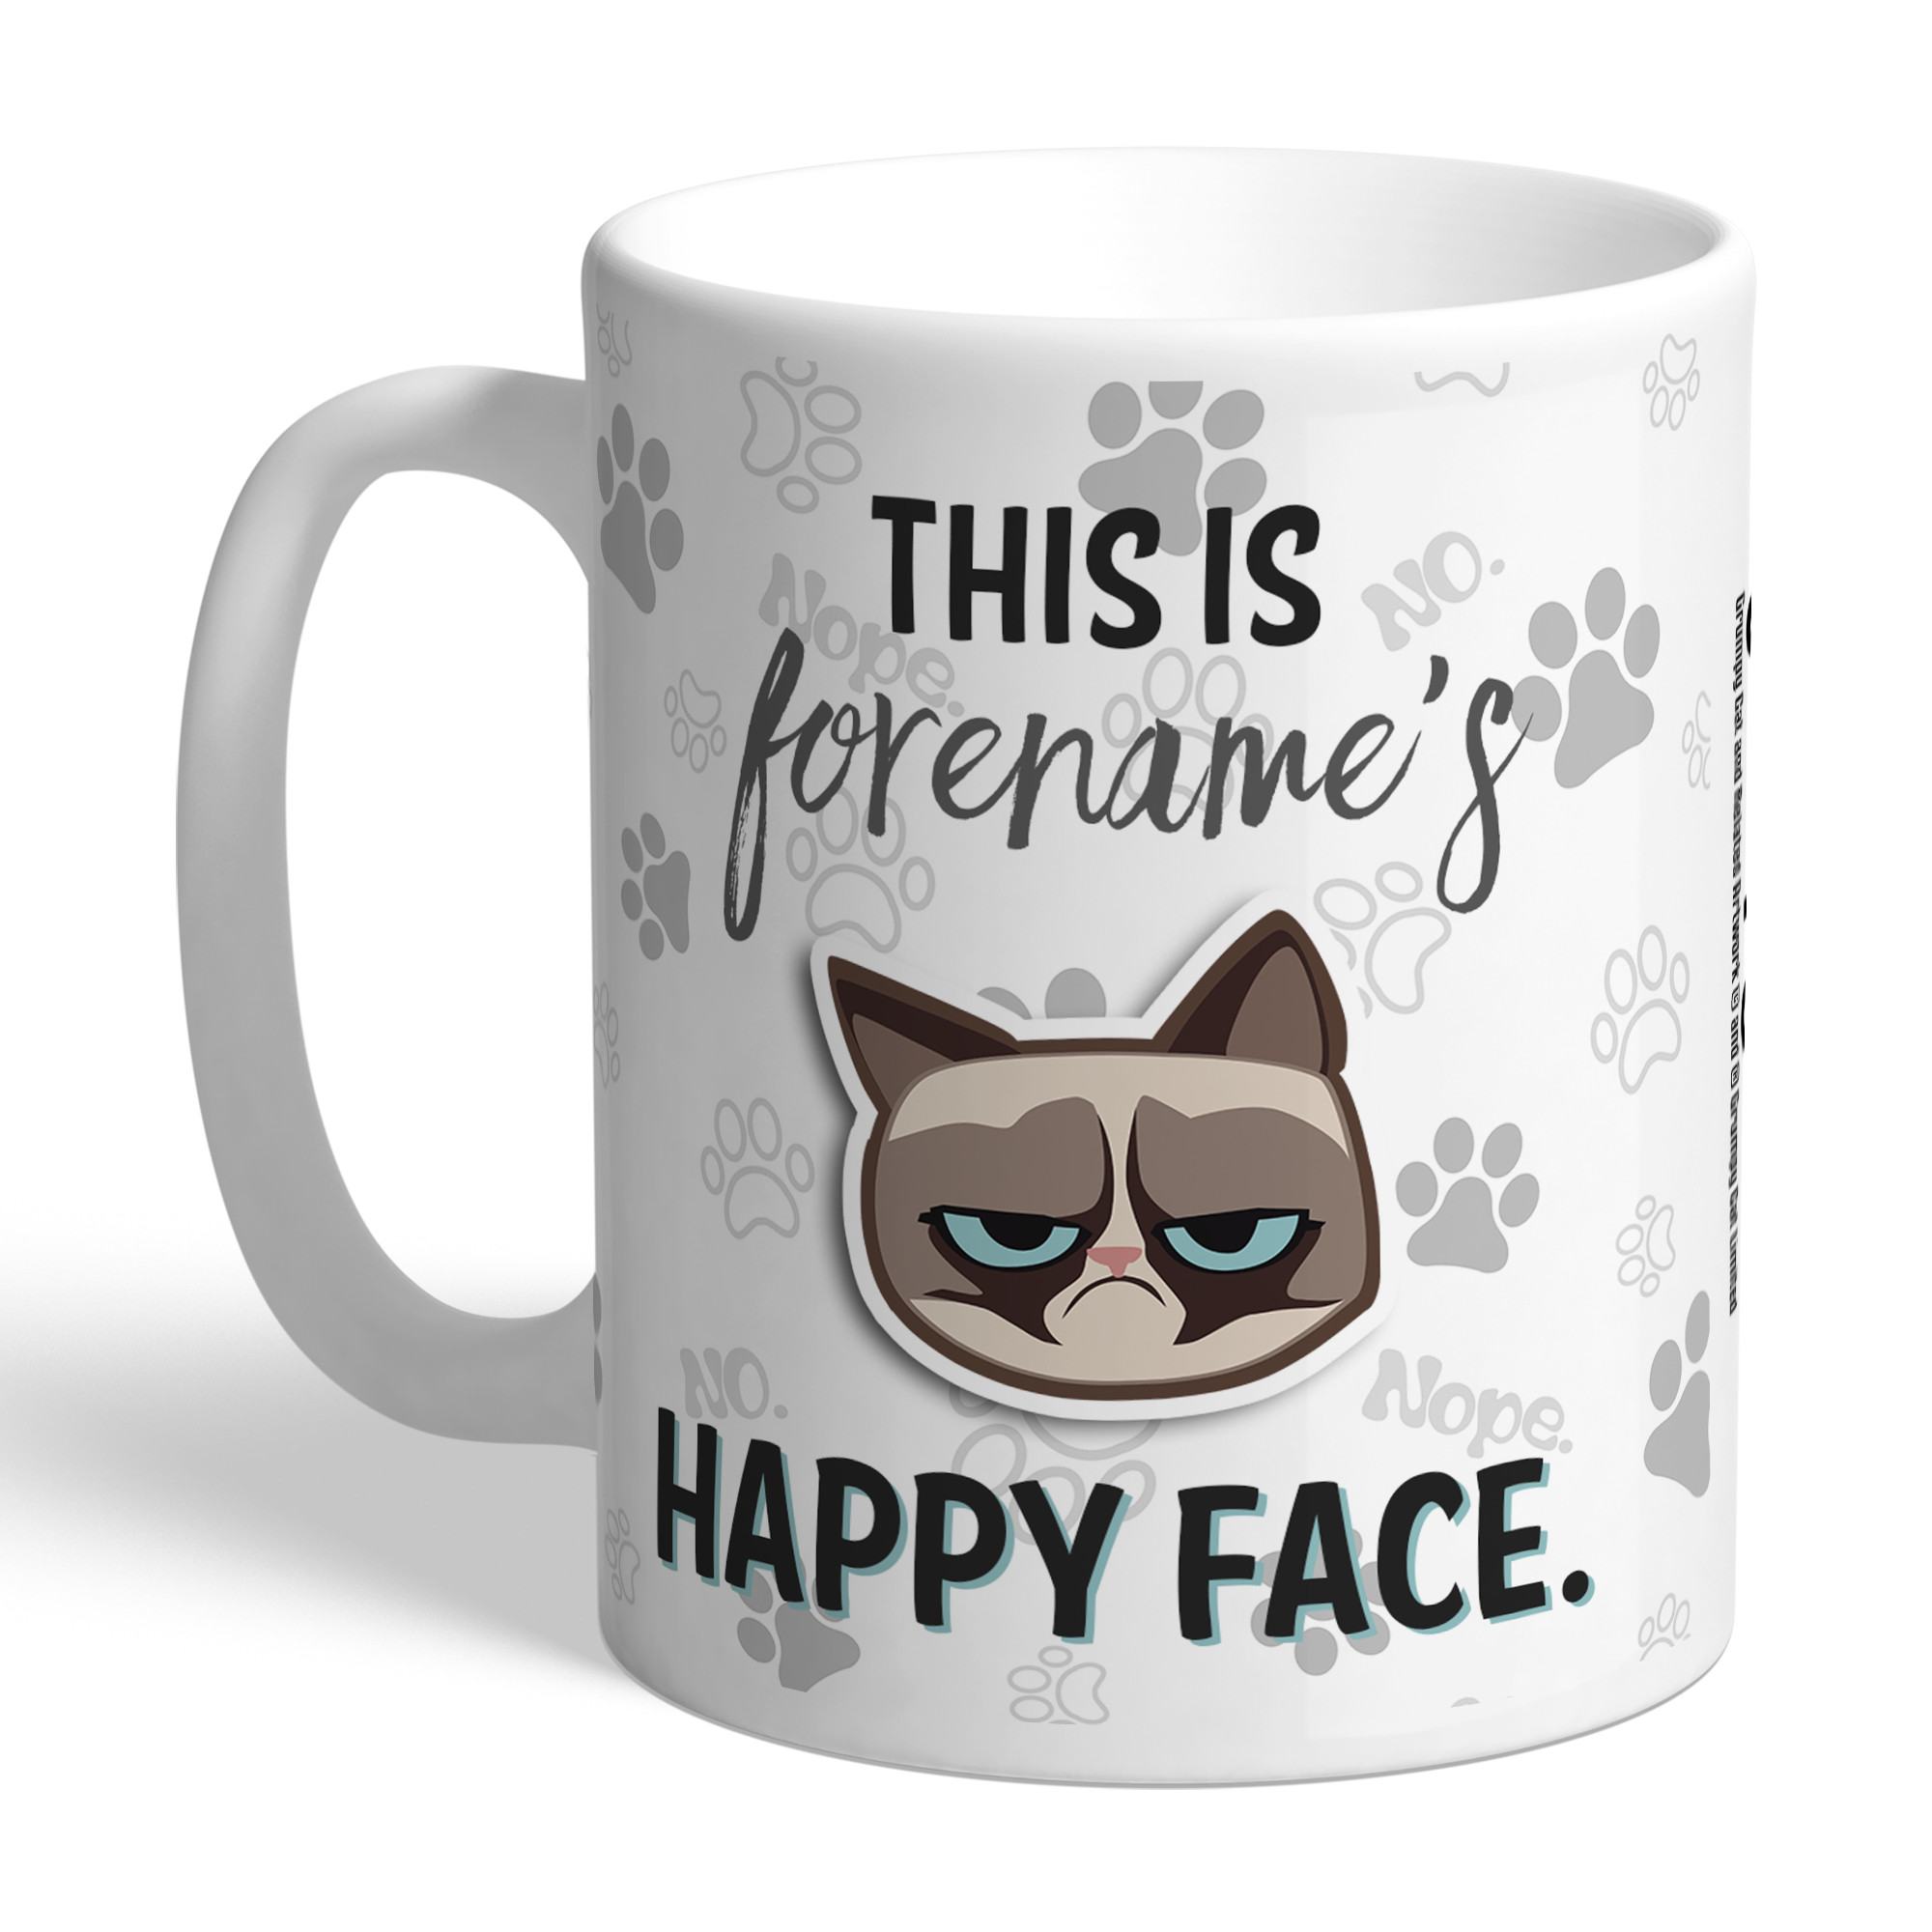 smiley face vase of grumpy cat emoji happy face mug grey grumpy cata in grumpy cat emoji happy face mug grey